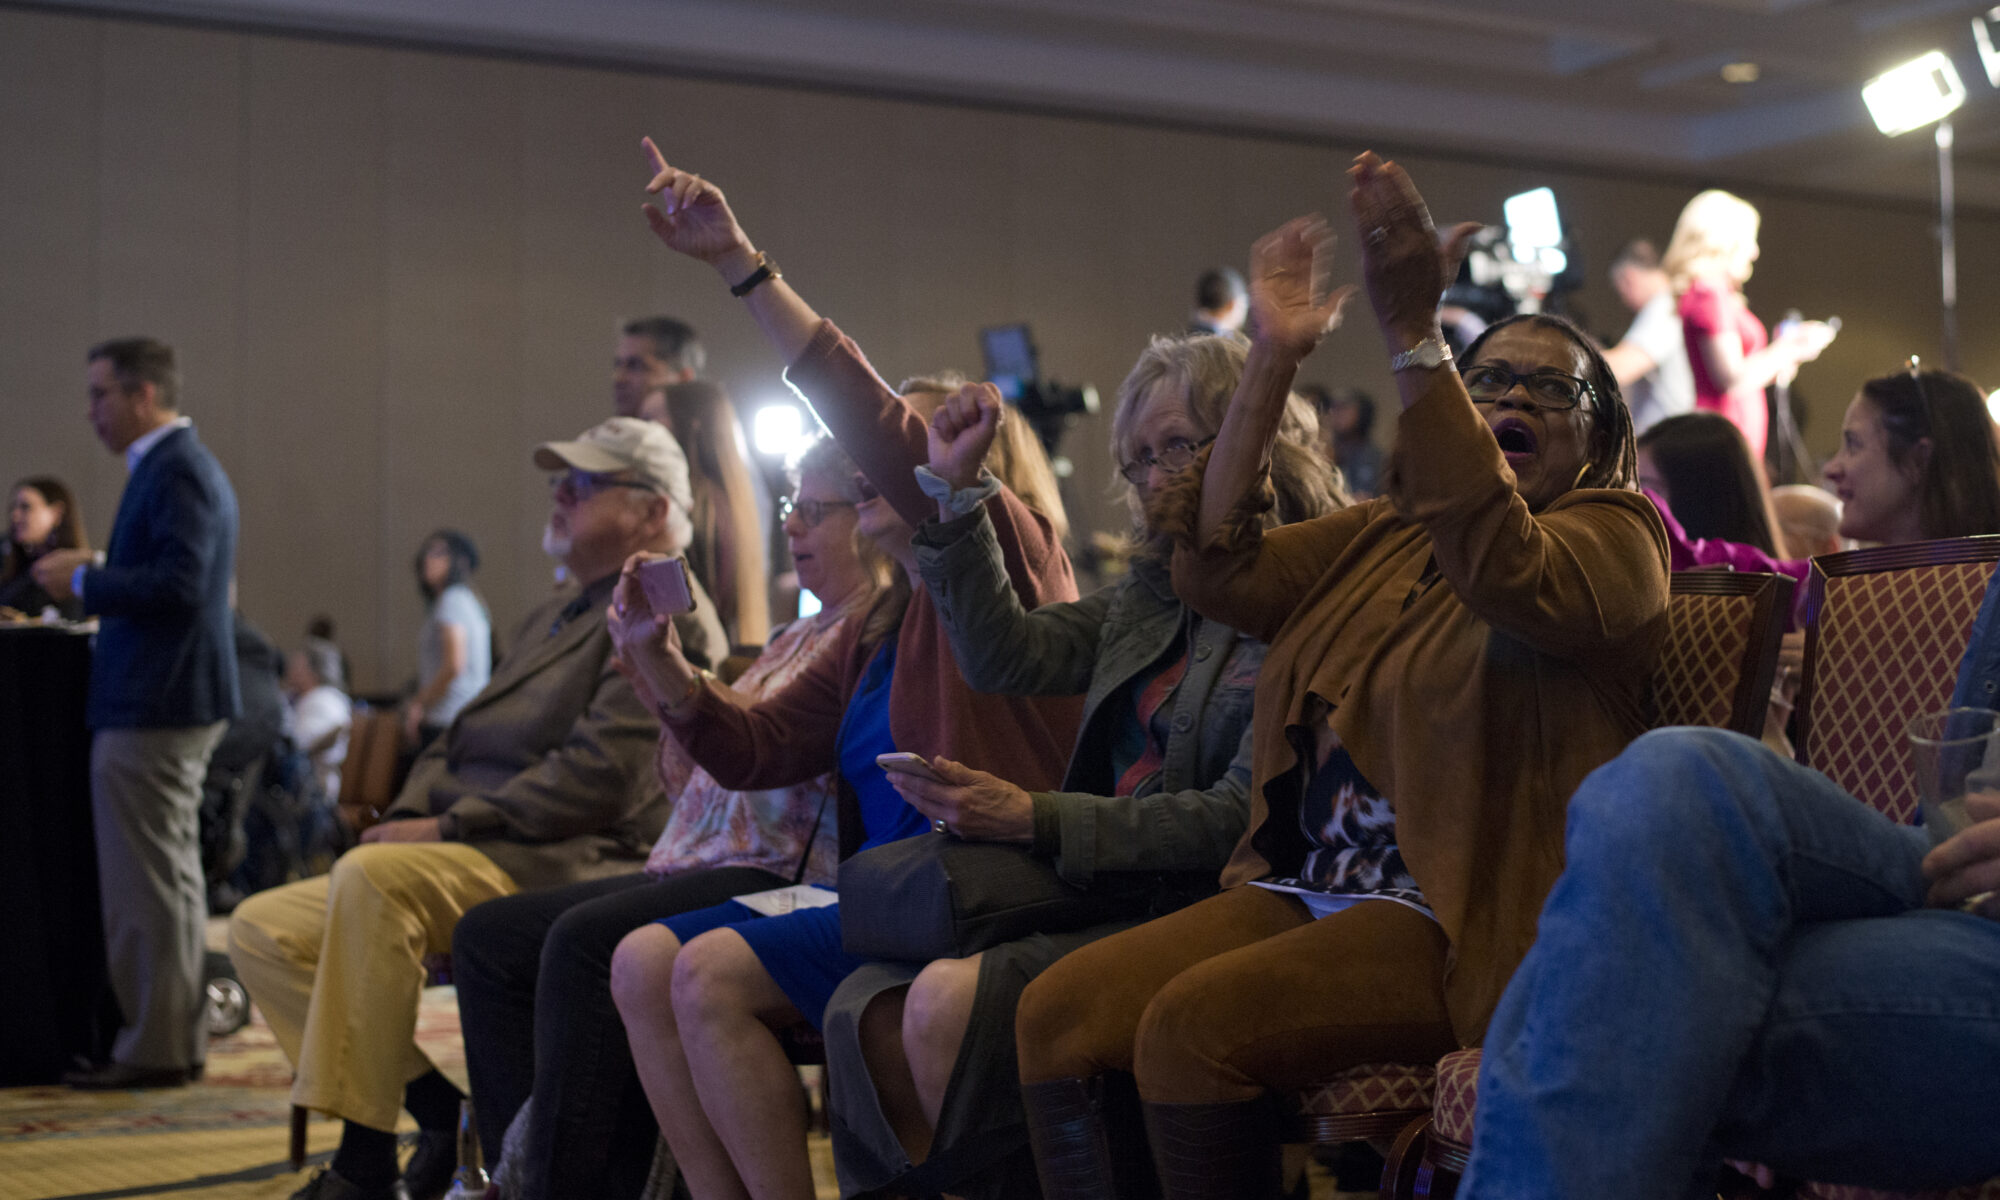 People react after the House is called in favor of Democrats during the Nevada Democratic Party election night event at Caesar Palace